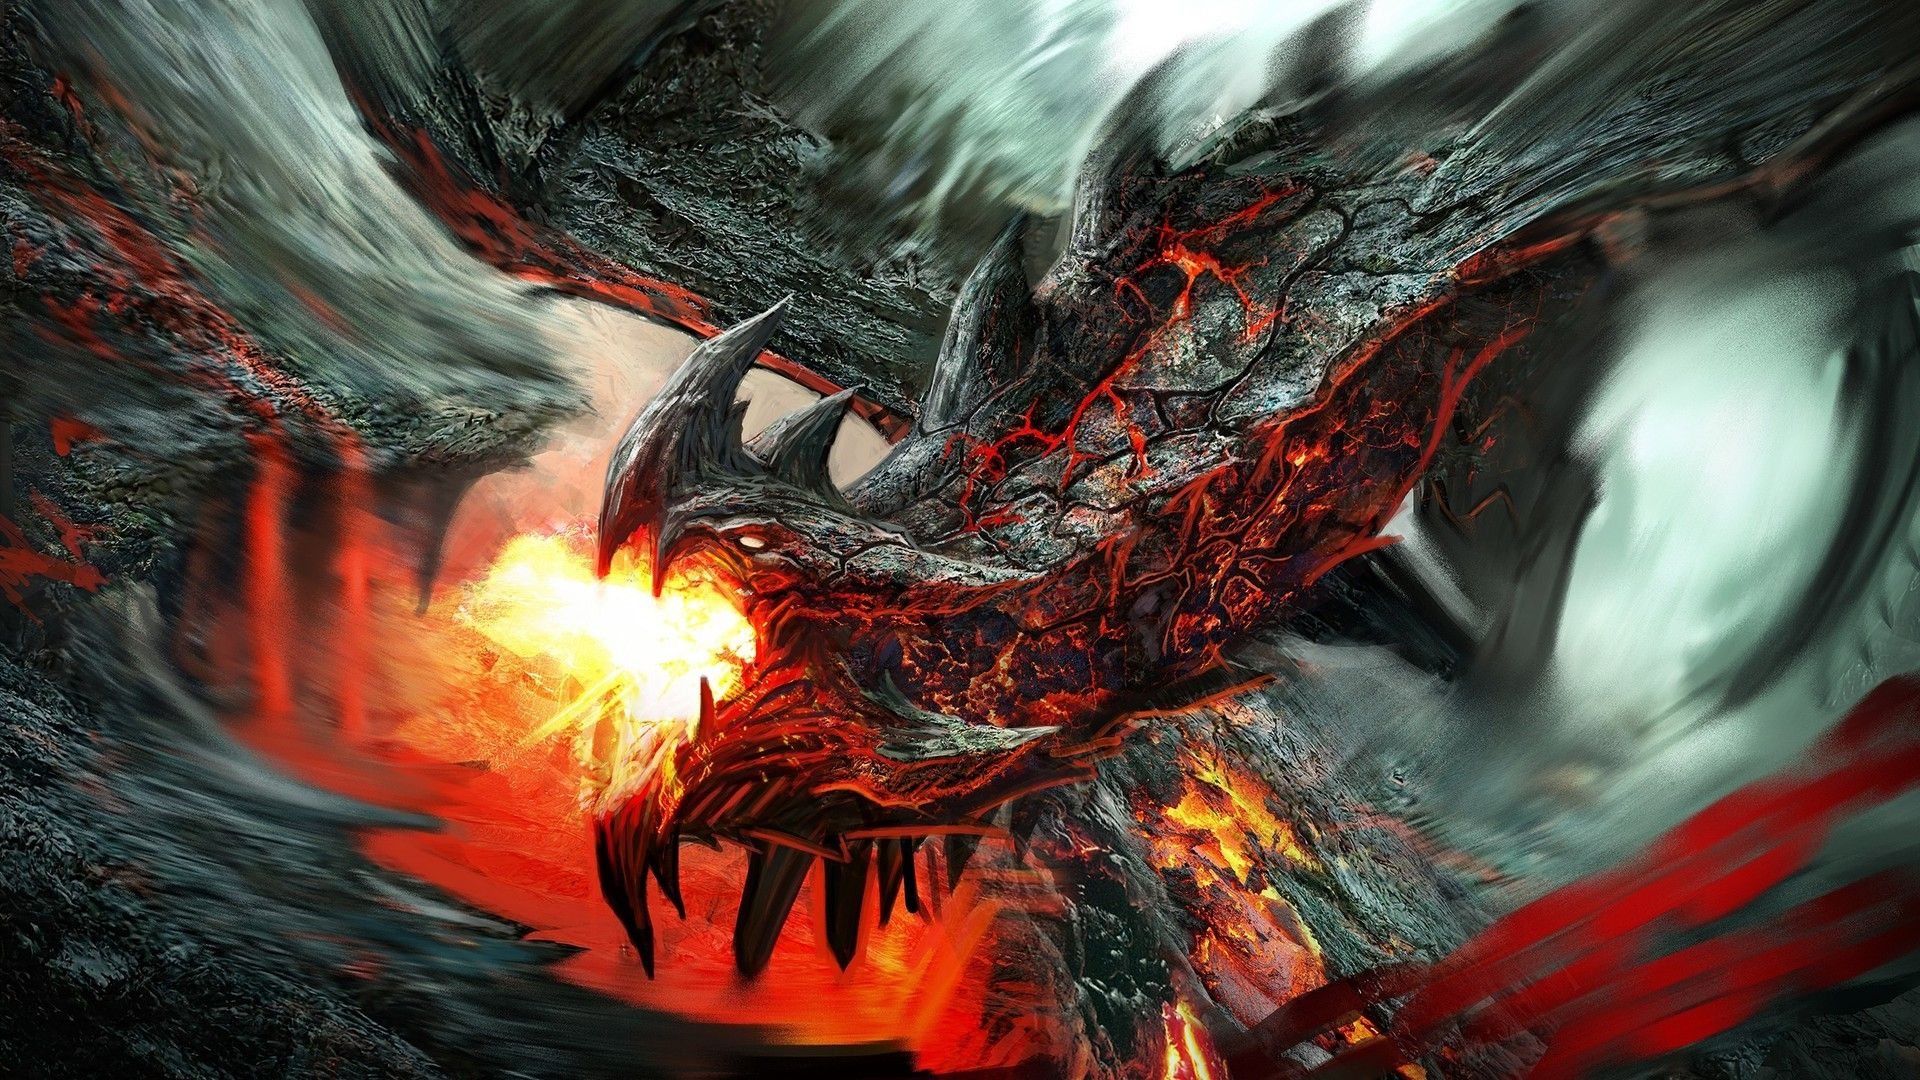 Fire breathing lava dragon fantasy hd wallpaper 1920x1080 2073 dragons pinterest dragons - Awesome dragon pictures ...